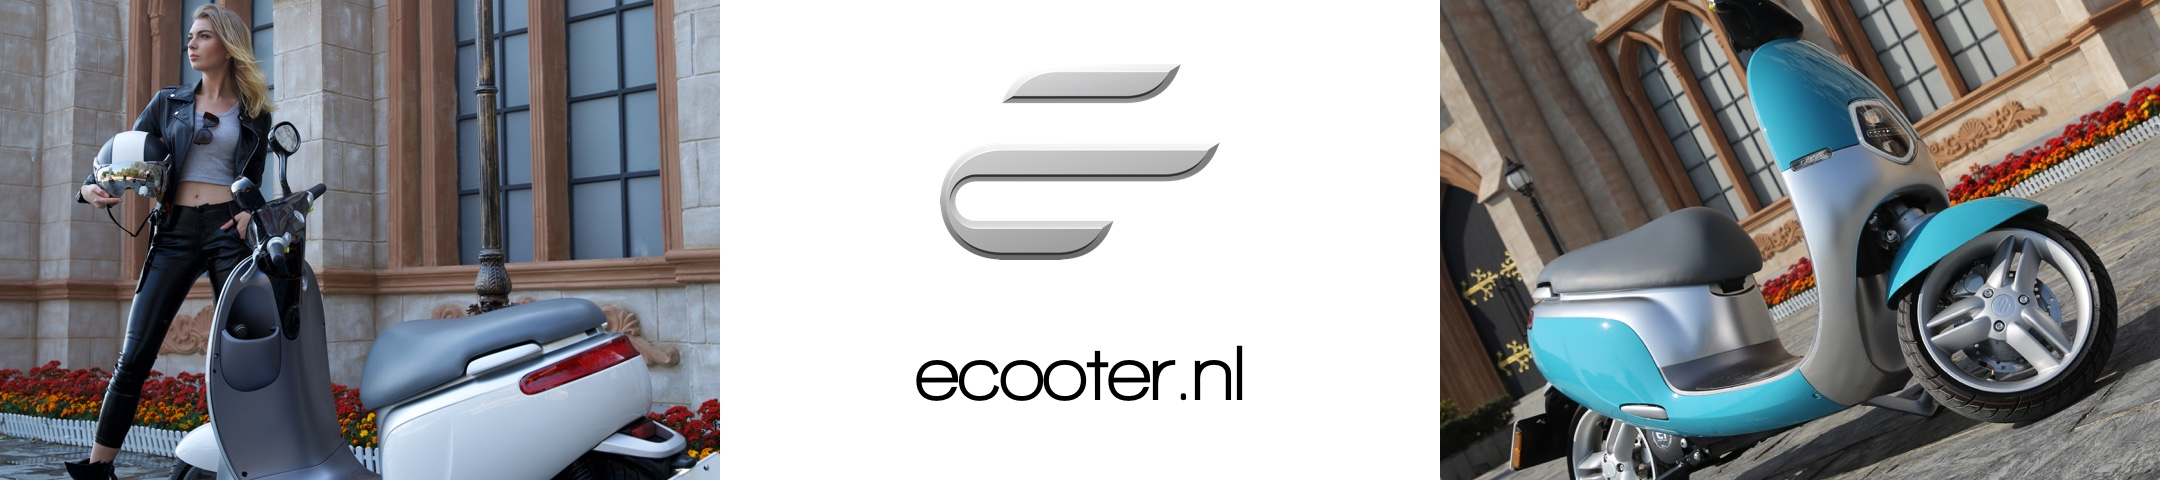 Ecooter